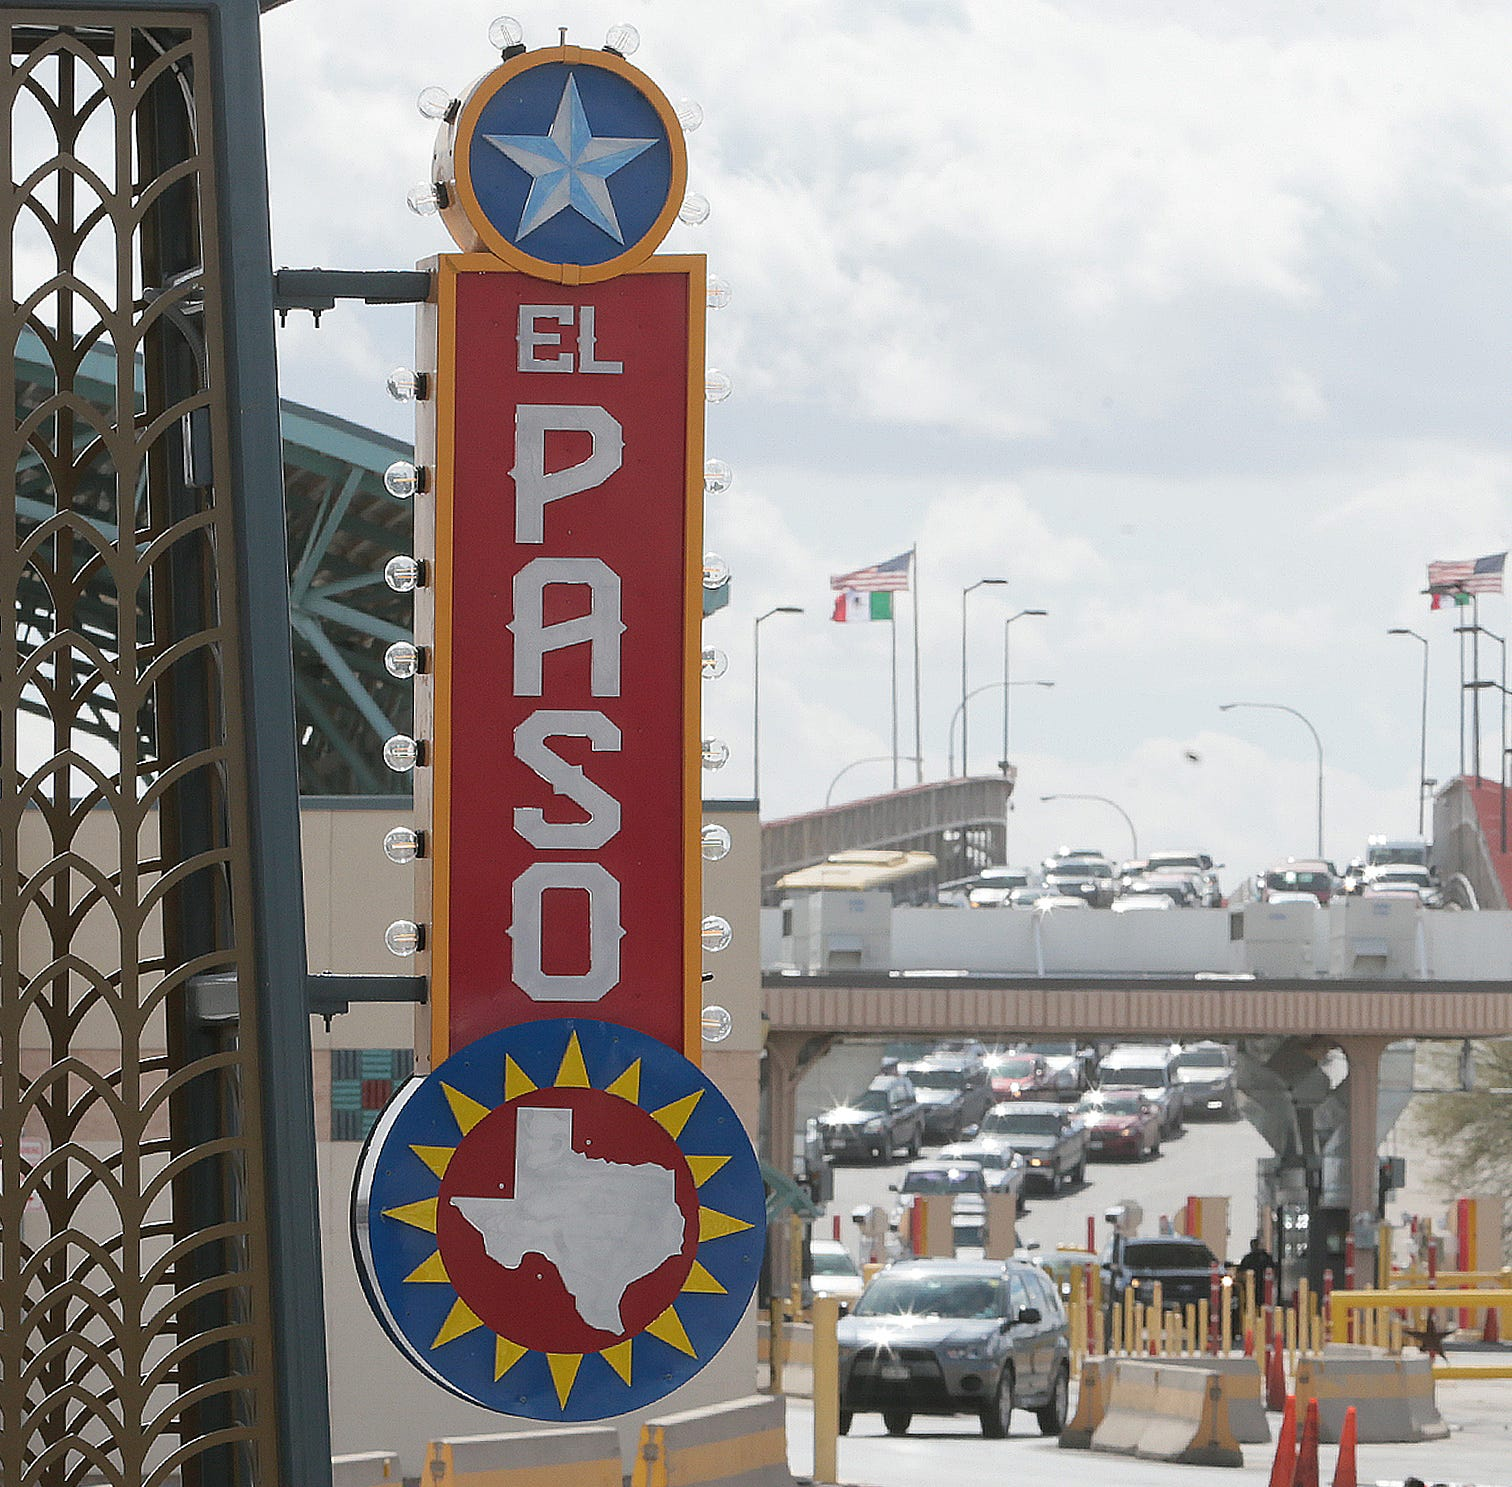 El Paso, Juárez are worlds apart, despite what border wall opponents say: Reader